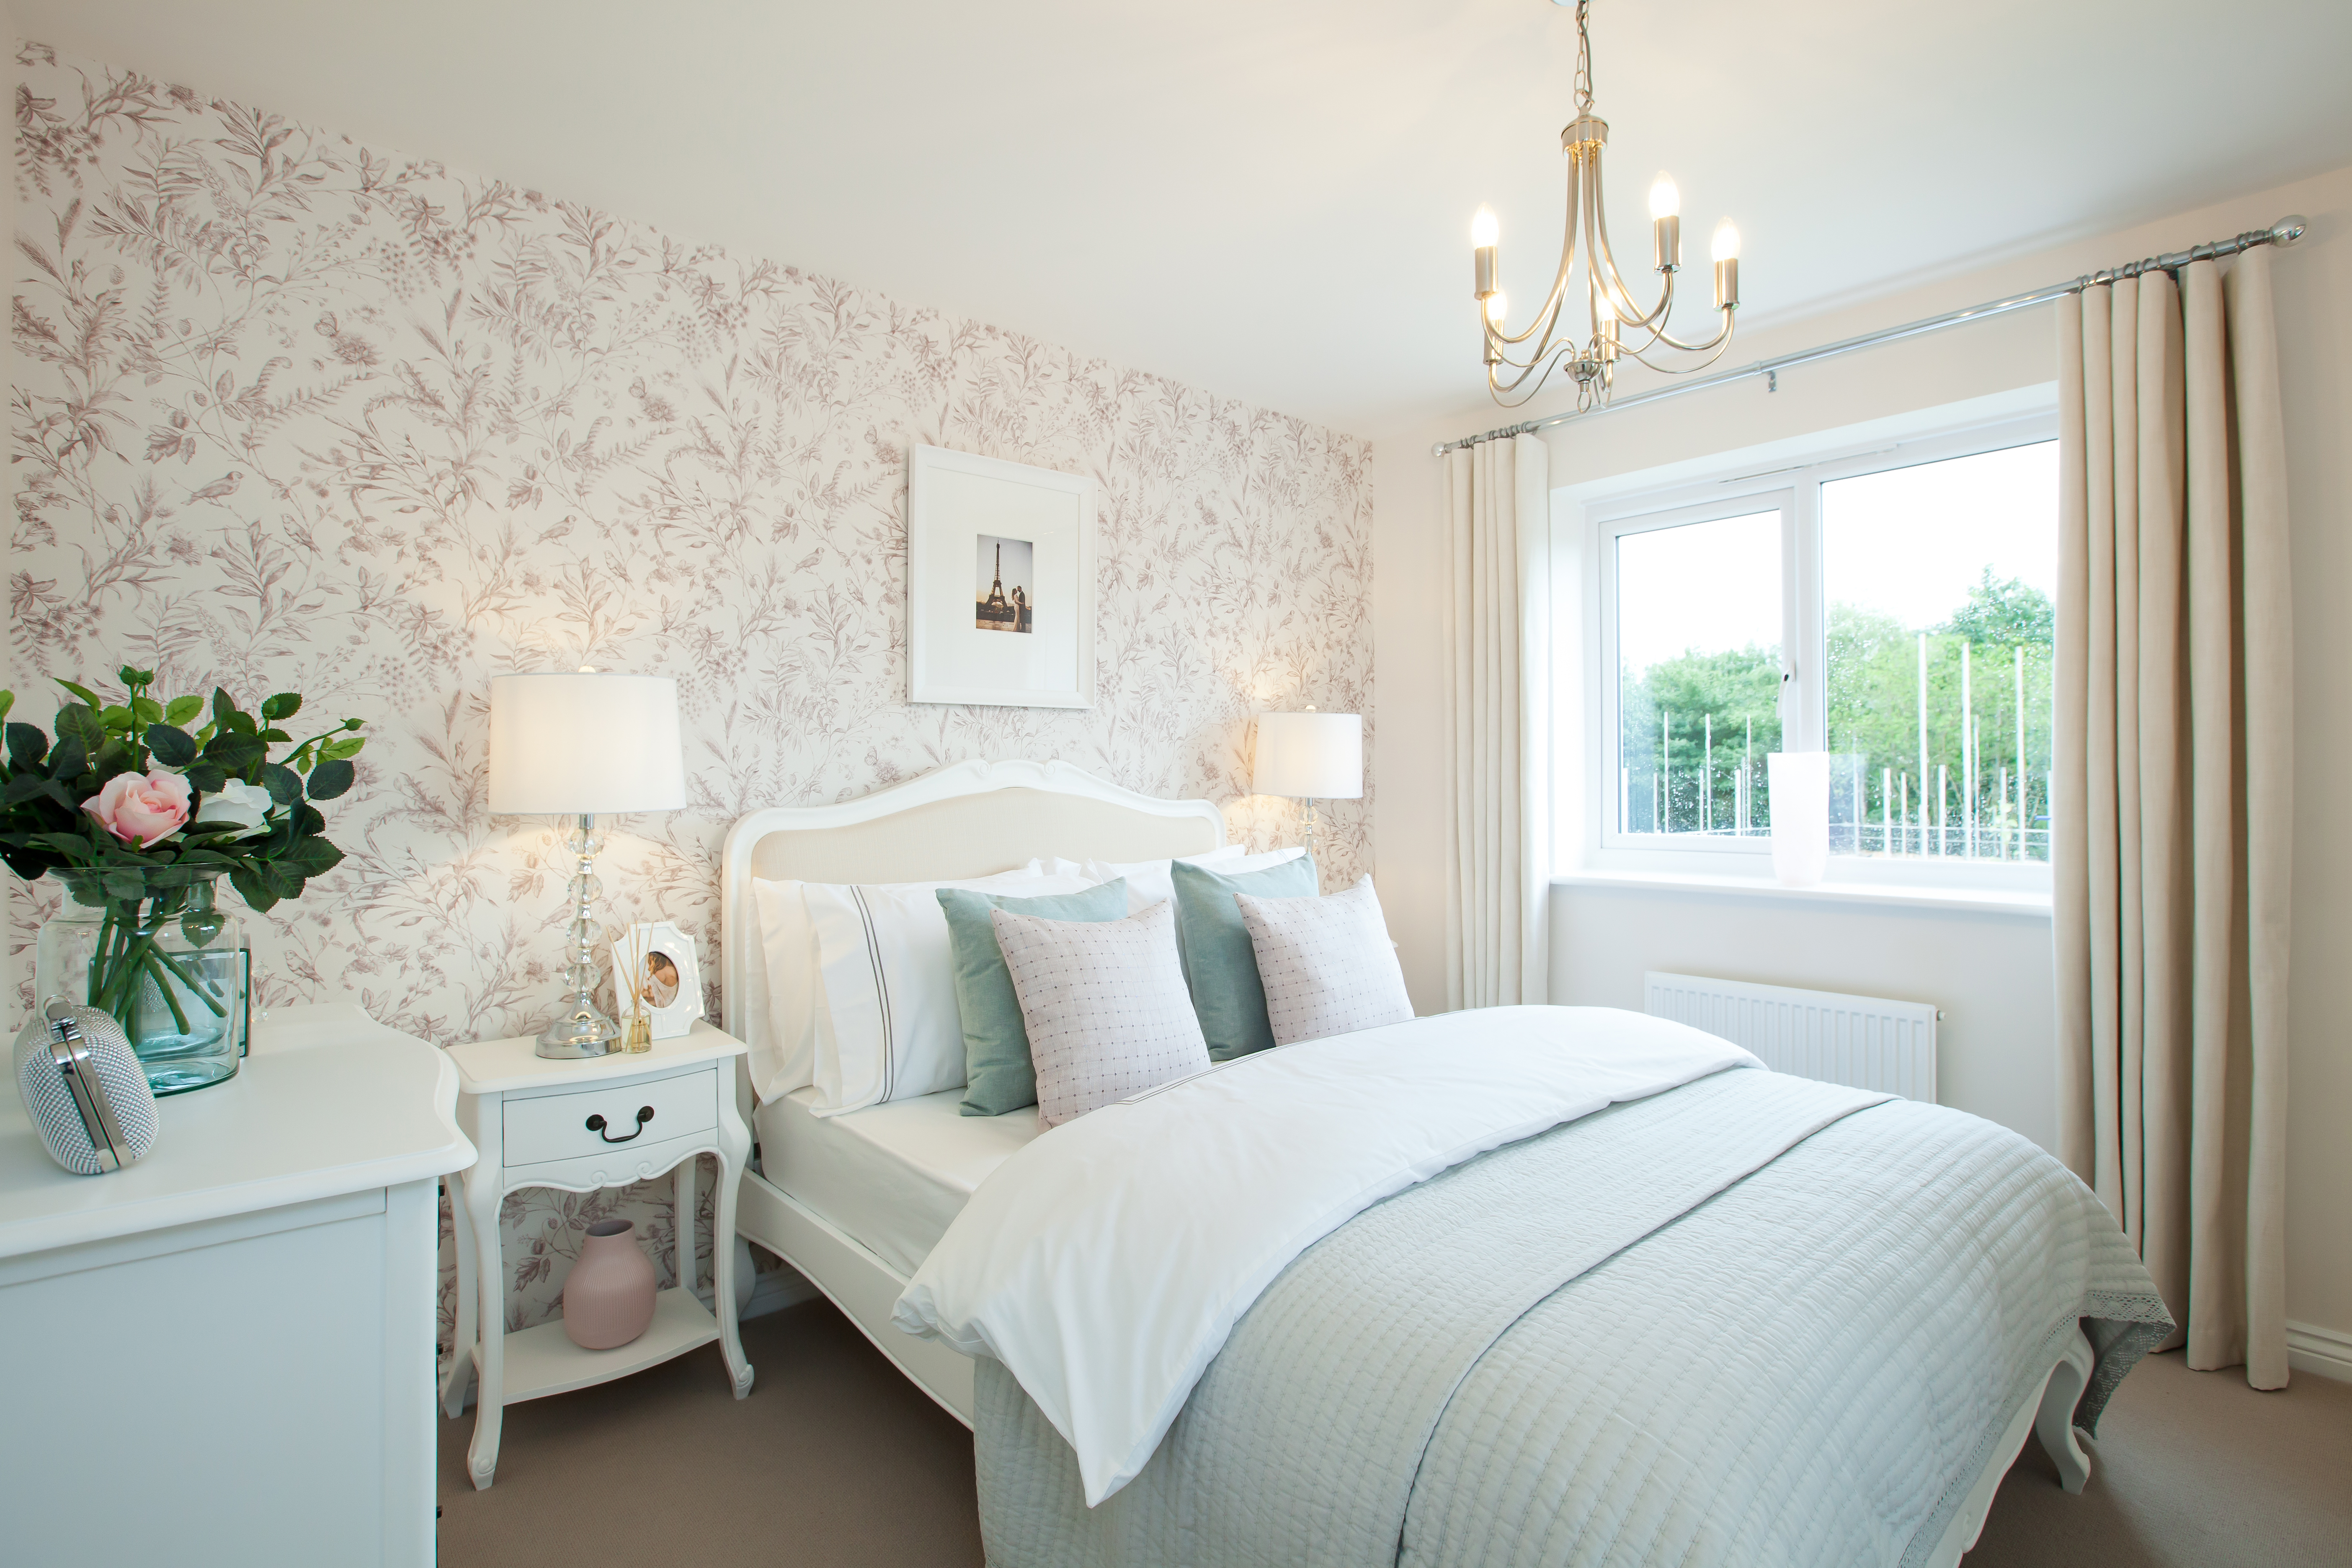 Typical Taylor Wimpey Home Bedroom